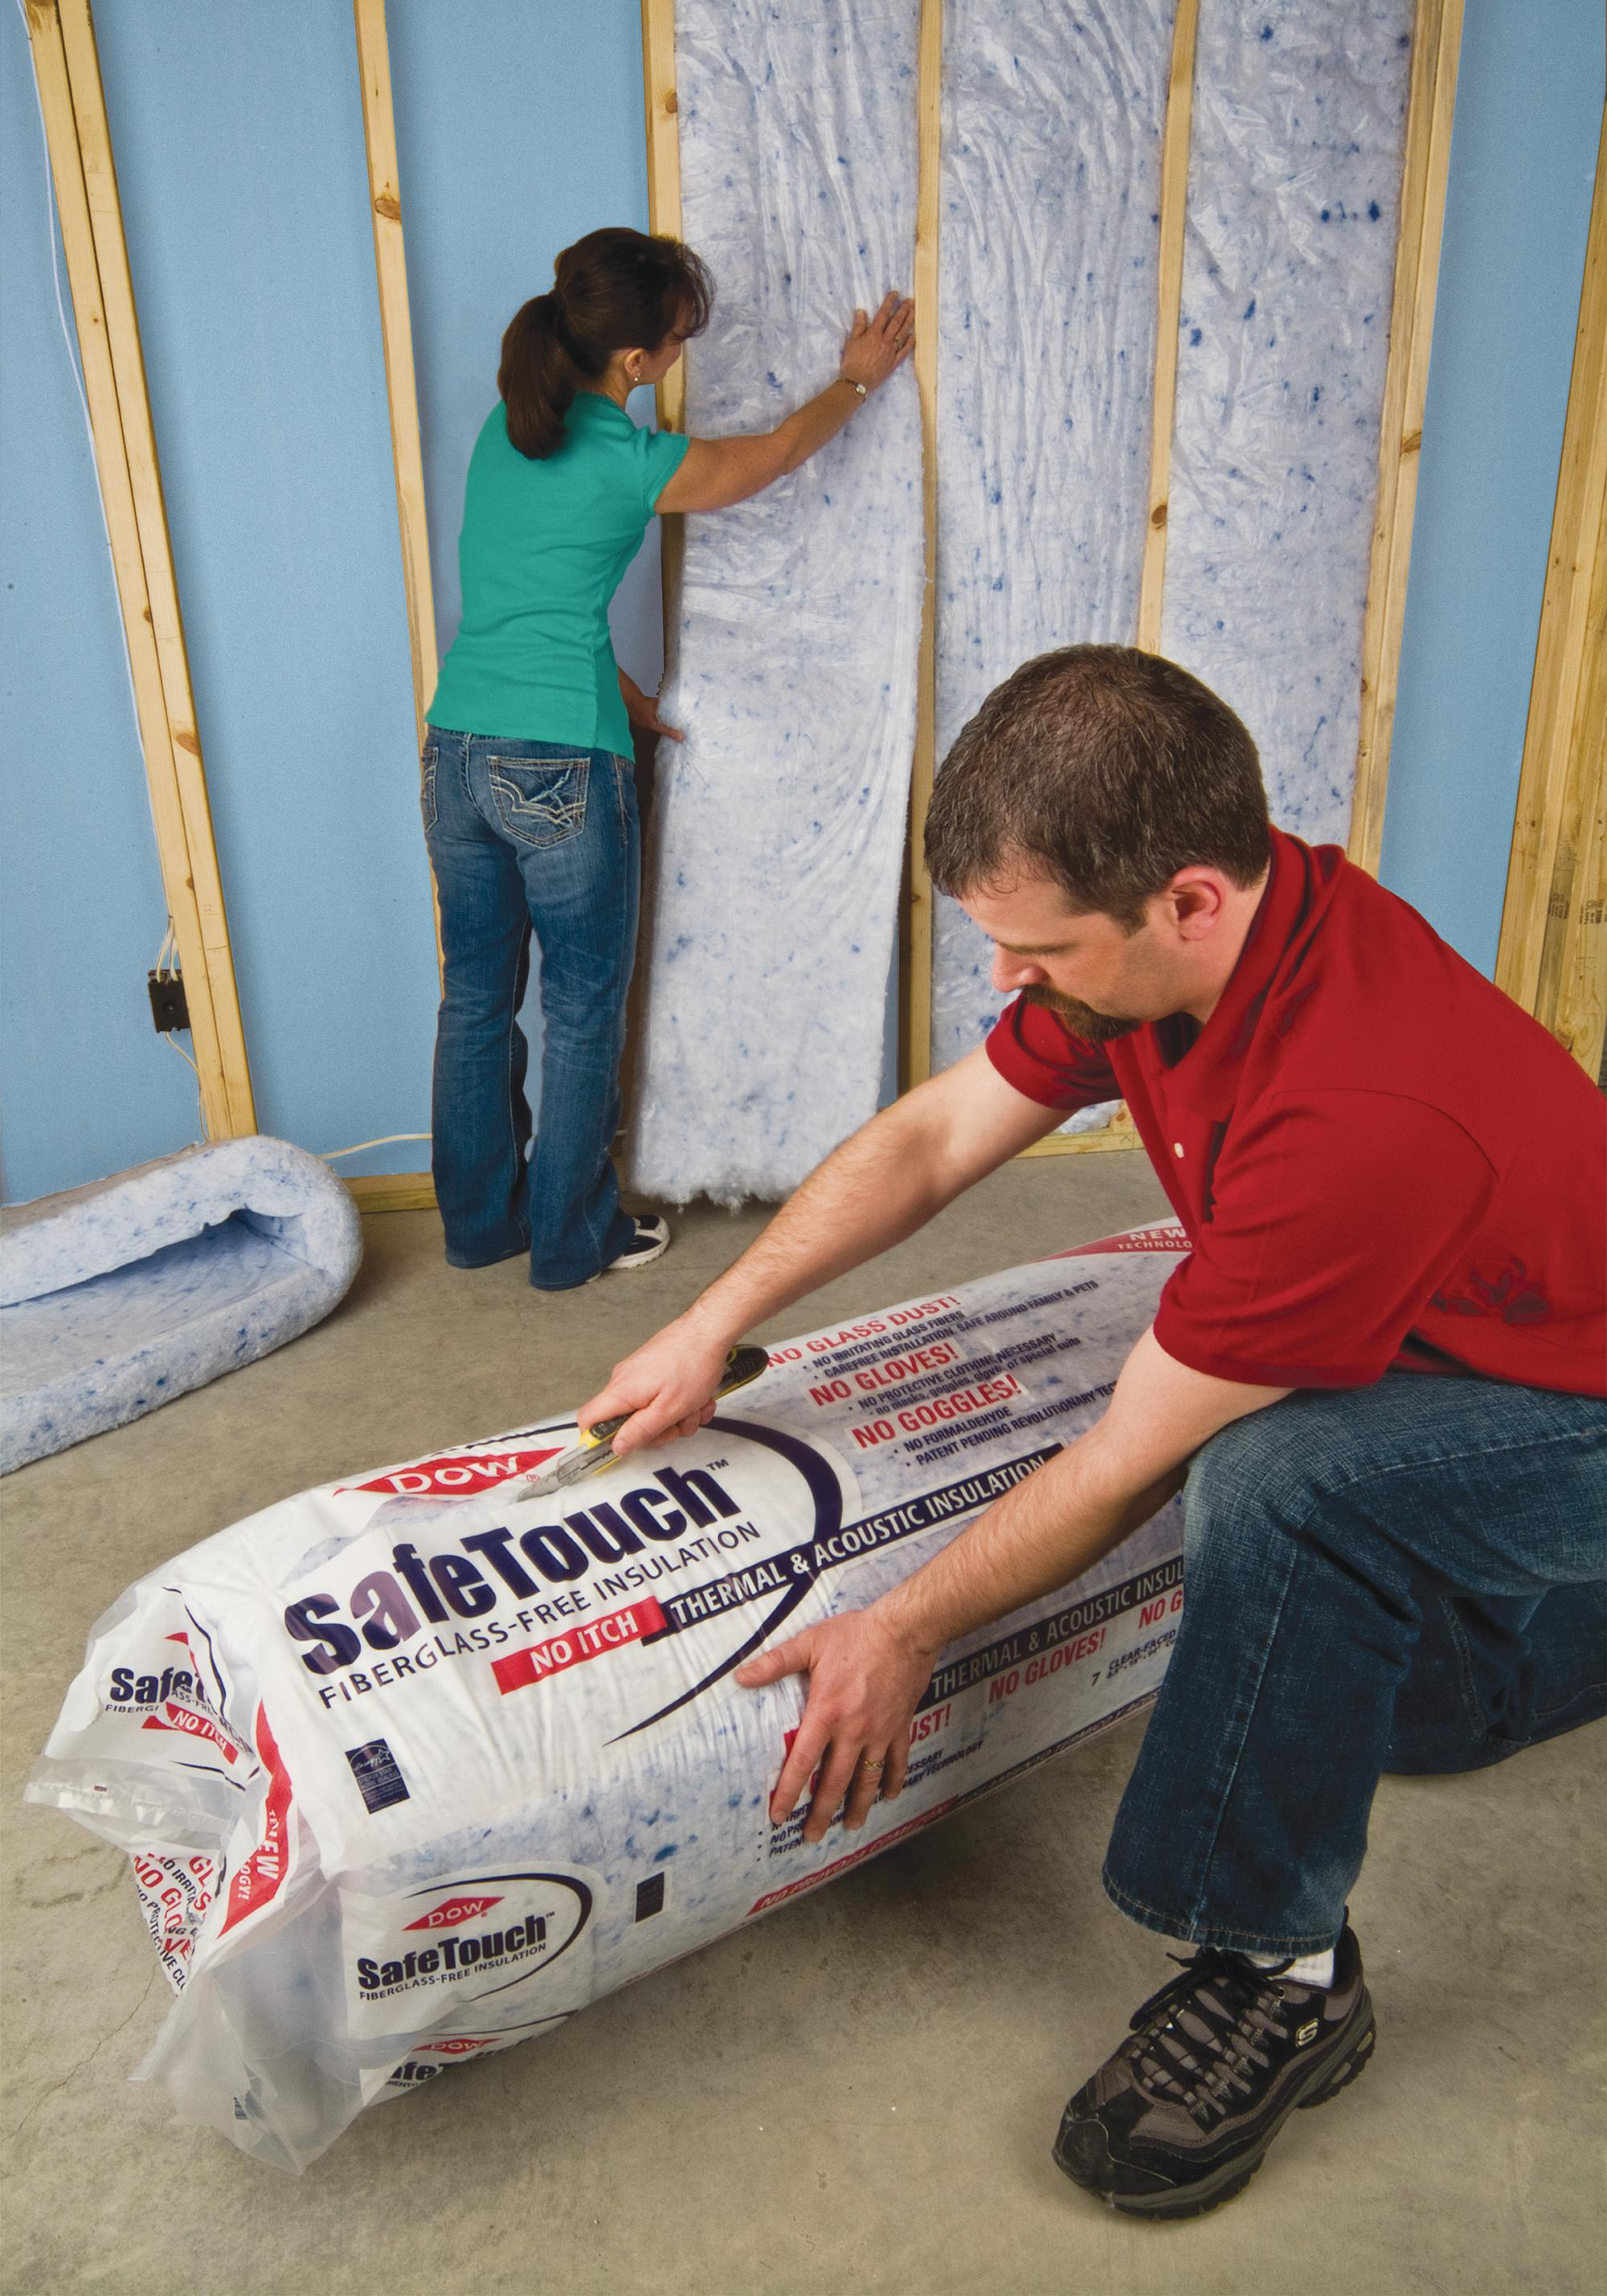 Dow SafeTouch Fiberglass-Free Insulation